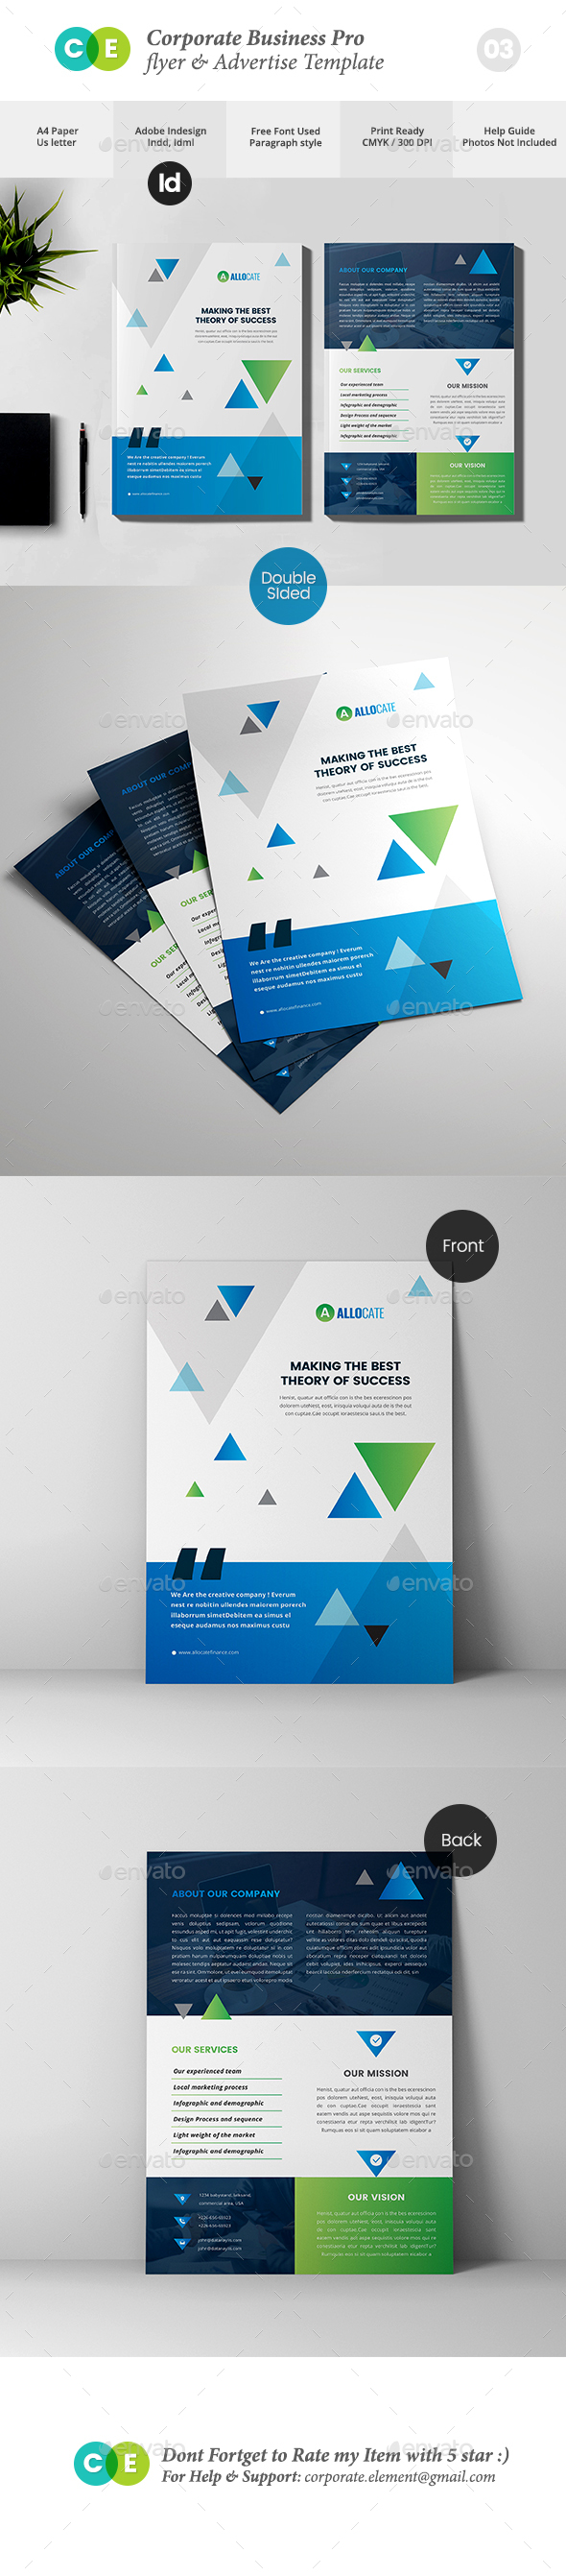 Corporate Business Pro Double Sided Flyer V03 - Corporate Flyers